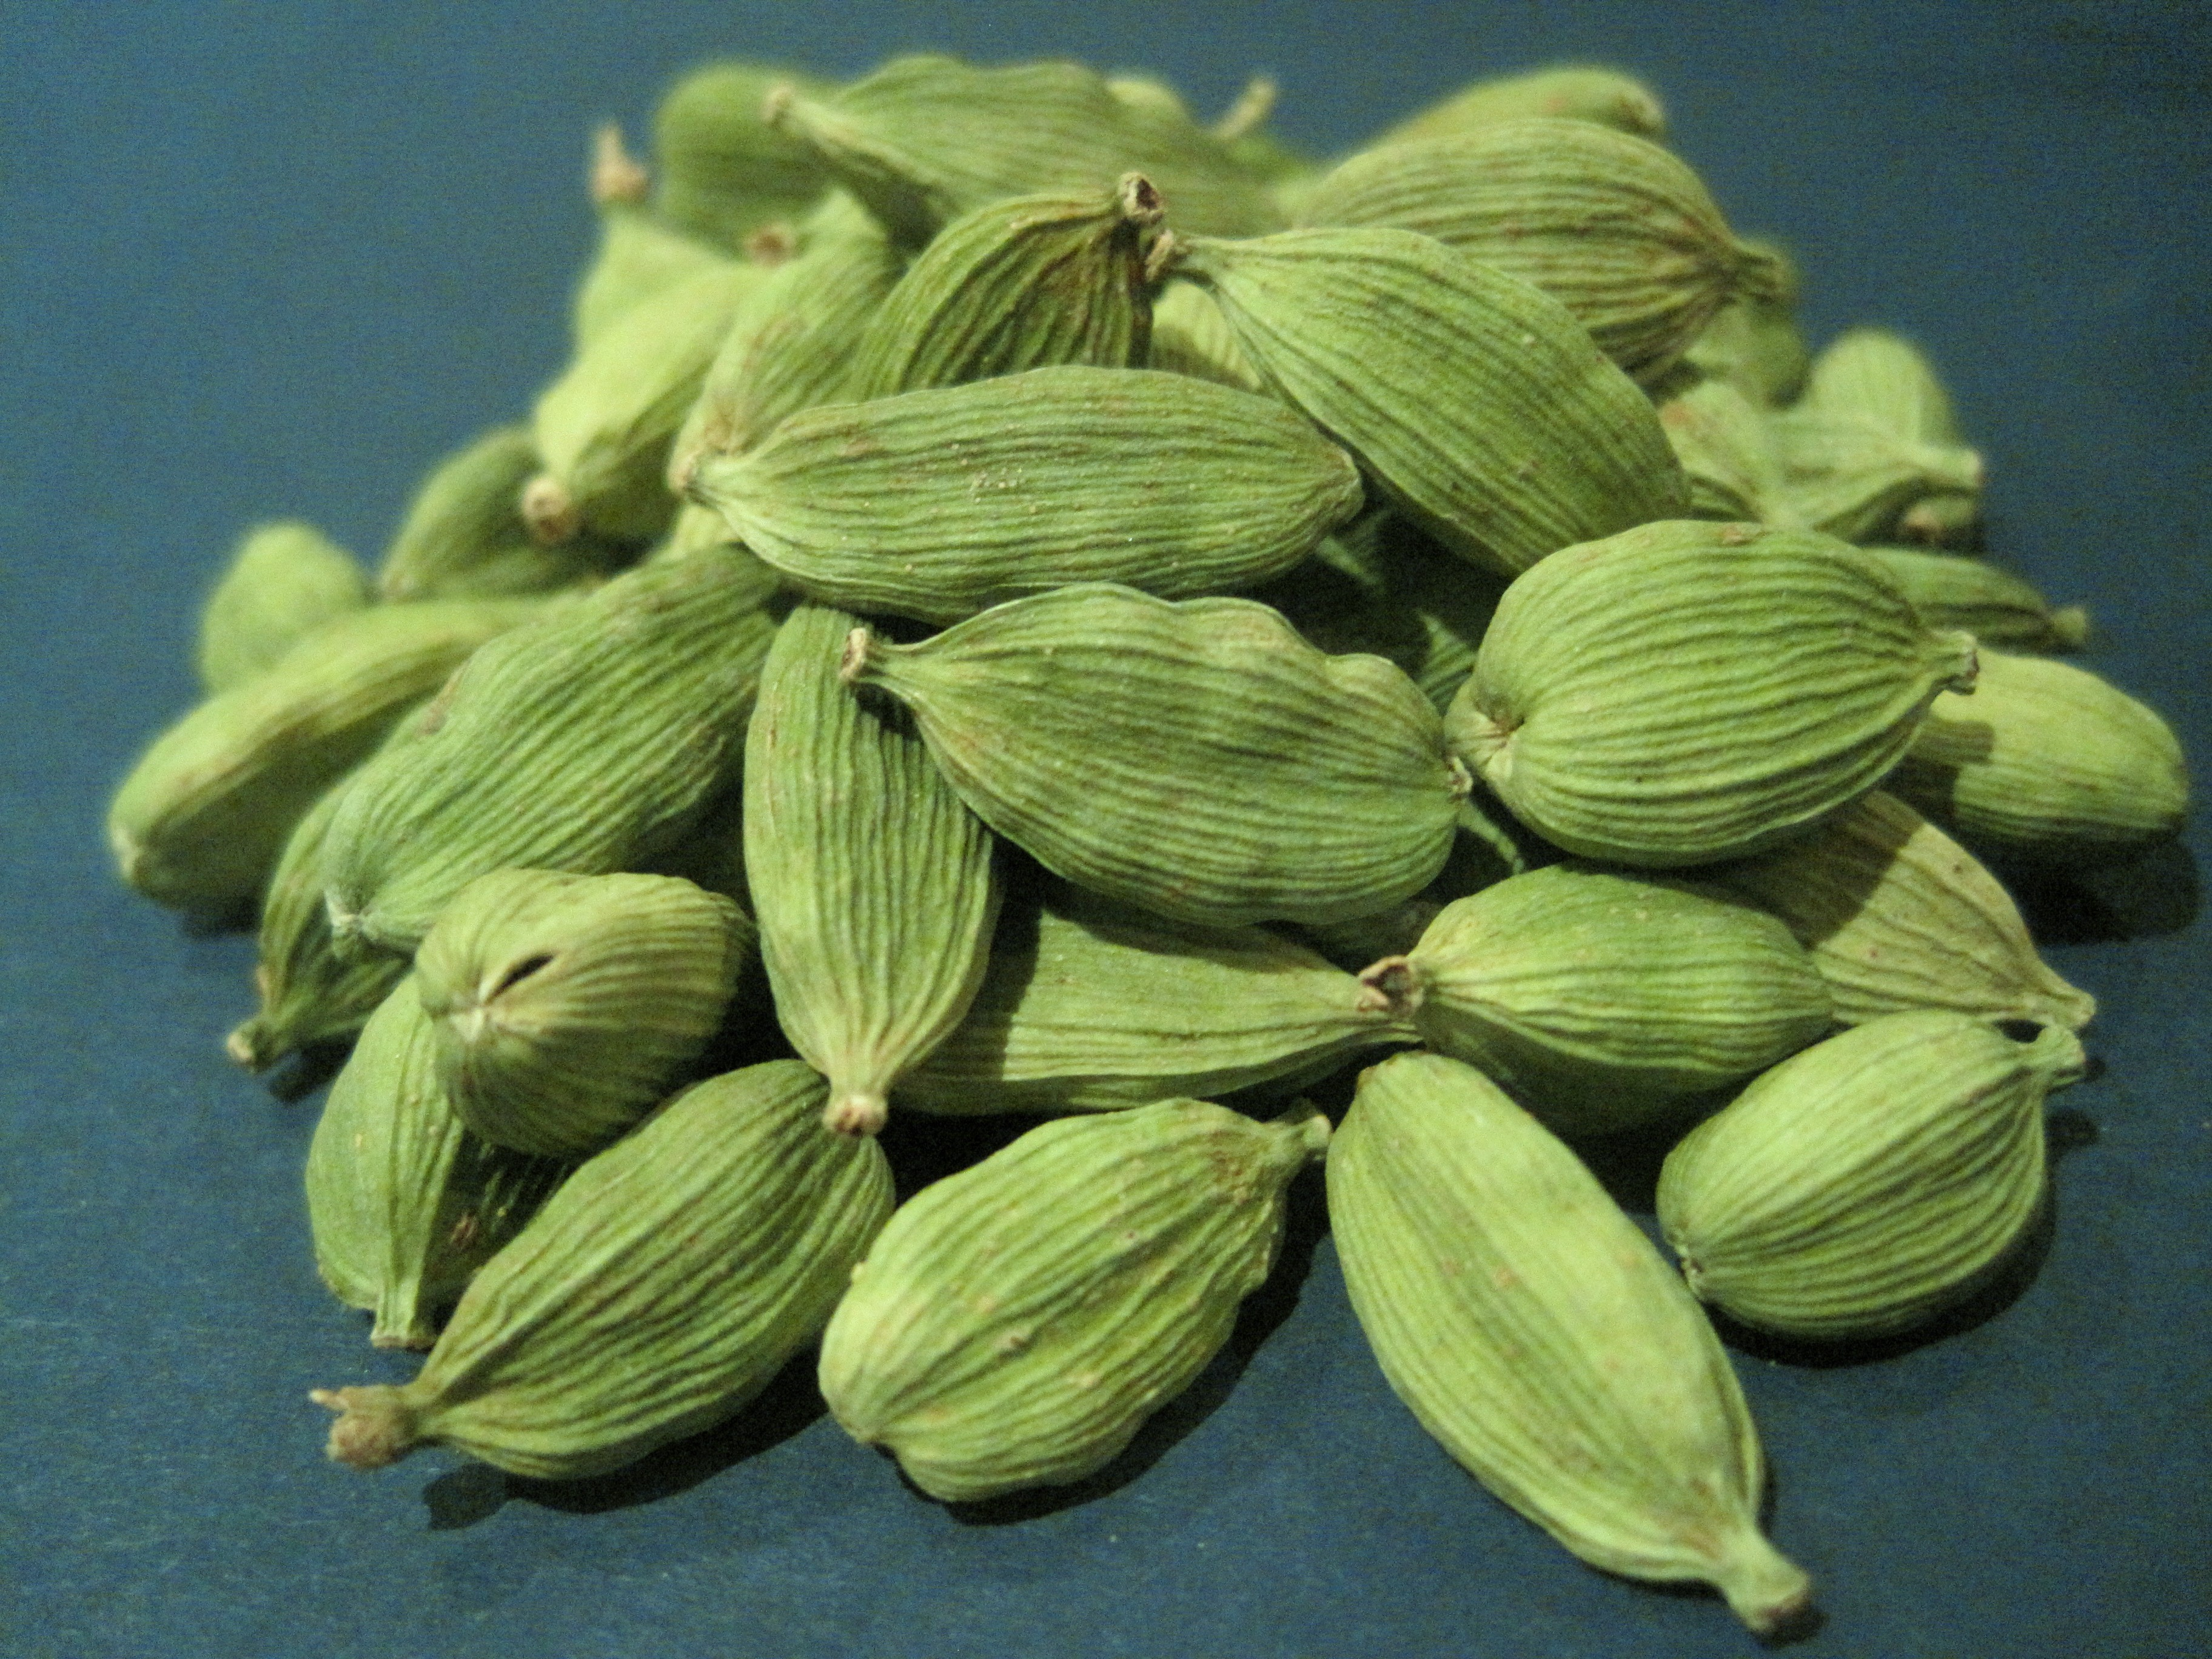 BMV Fragrances offers best quality cardamom oil including Reconstitution of Cardamom NNO Super, Cardamom NT 6000, and Cardamom Absolute that has benefits for health, skin & hair.